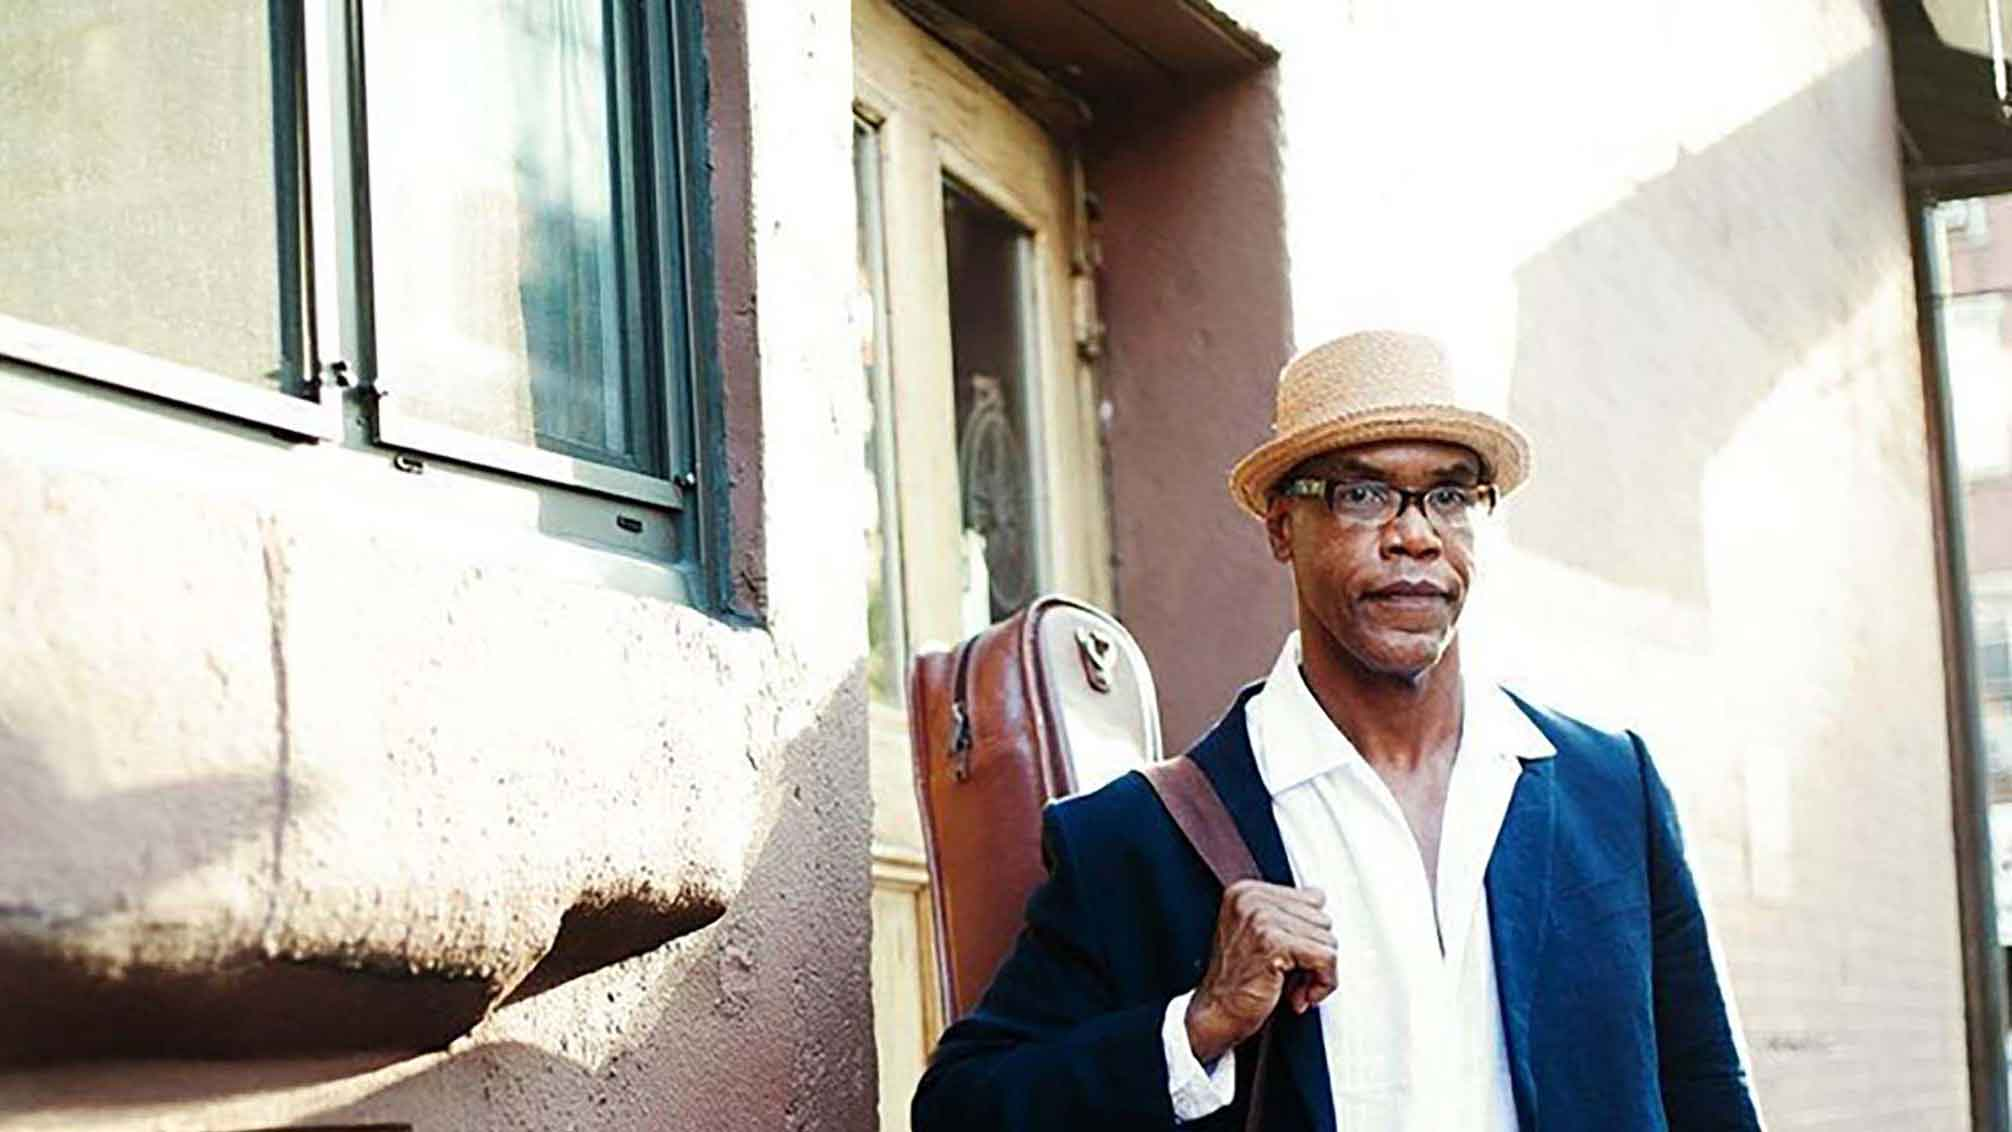 Jazz musician Ed Cherry stands on a balcony with his leather cased guitar and hat